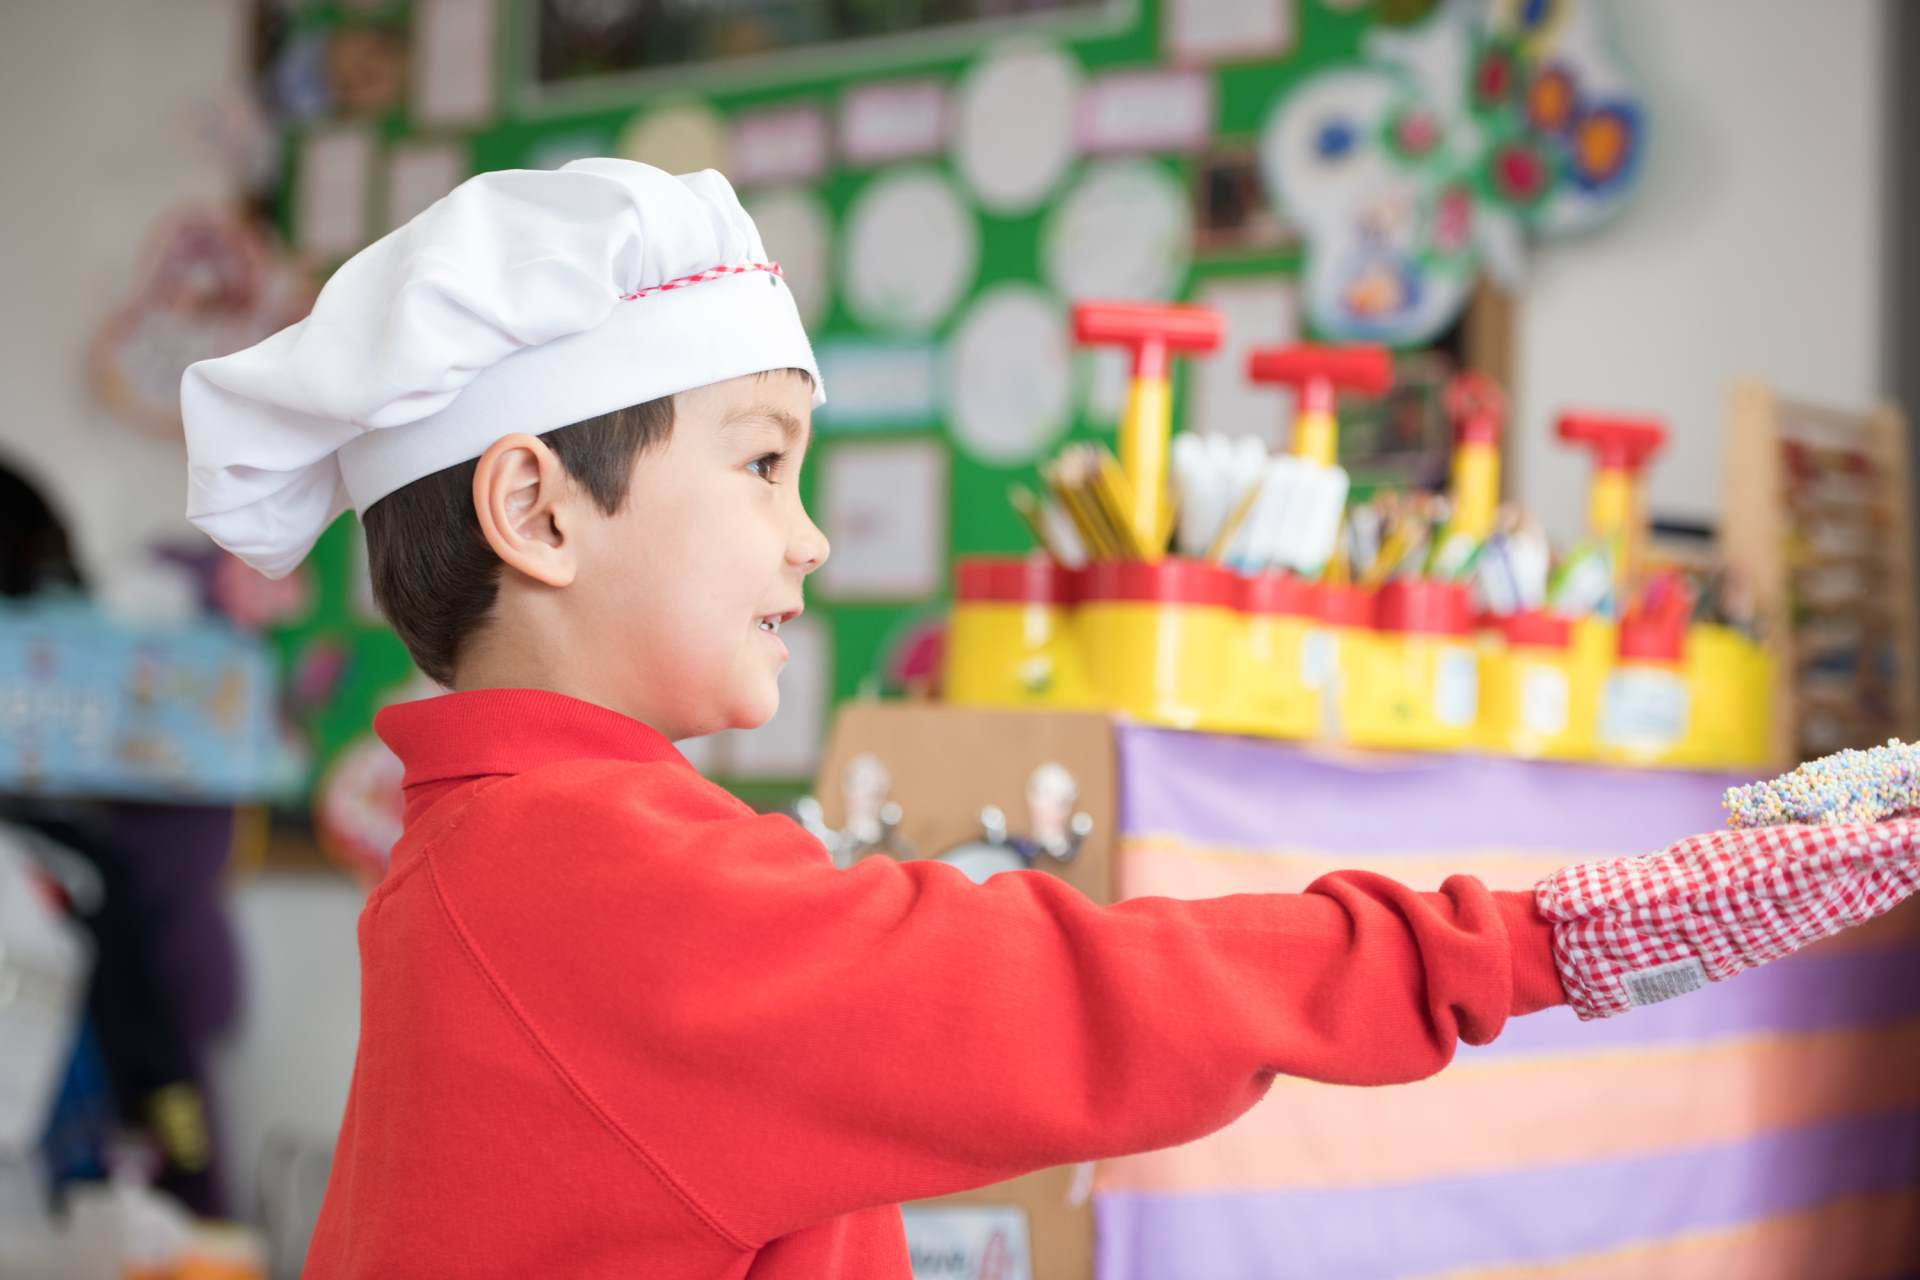 Boy chef hat creative play